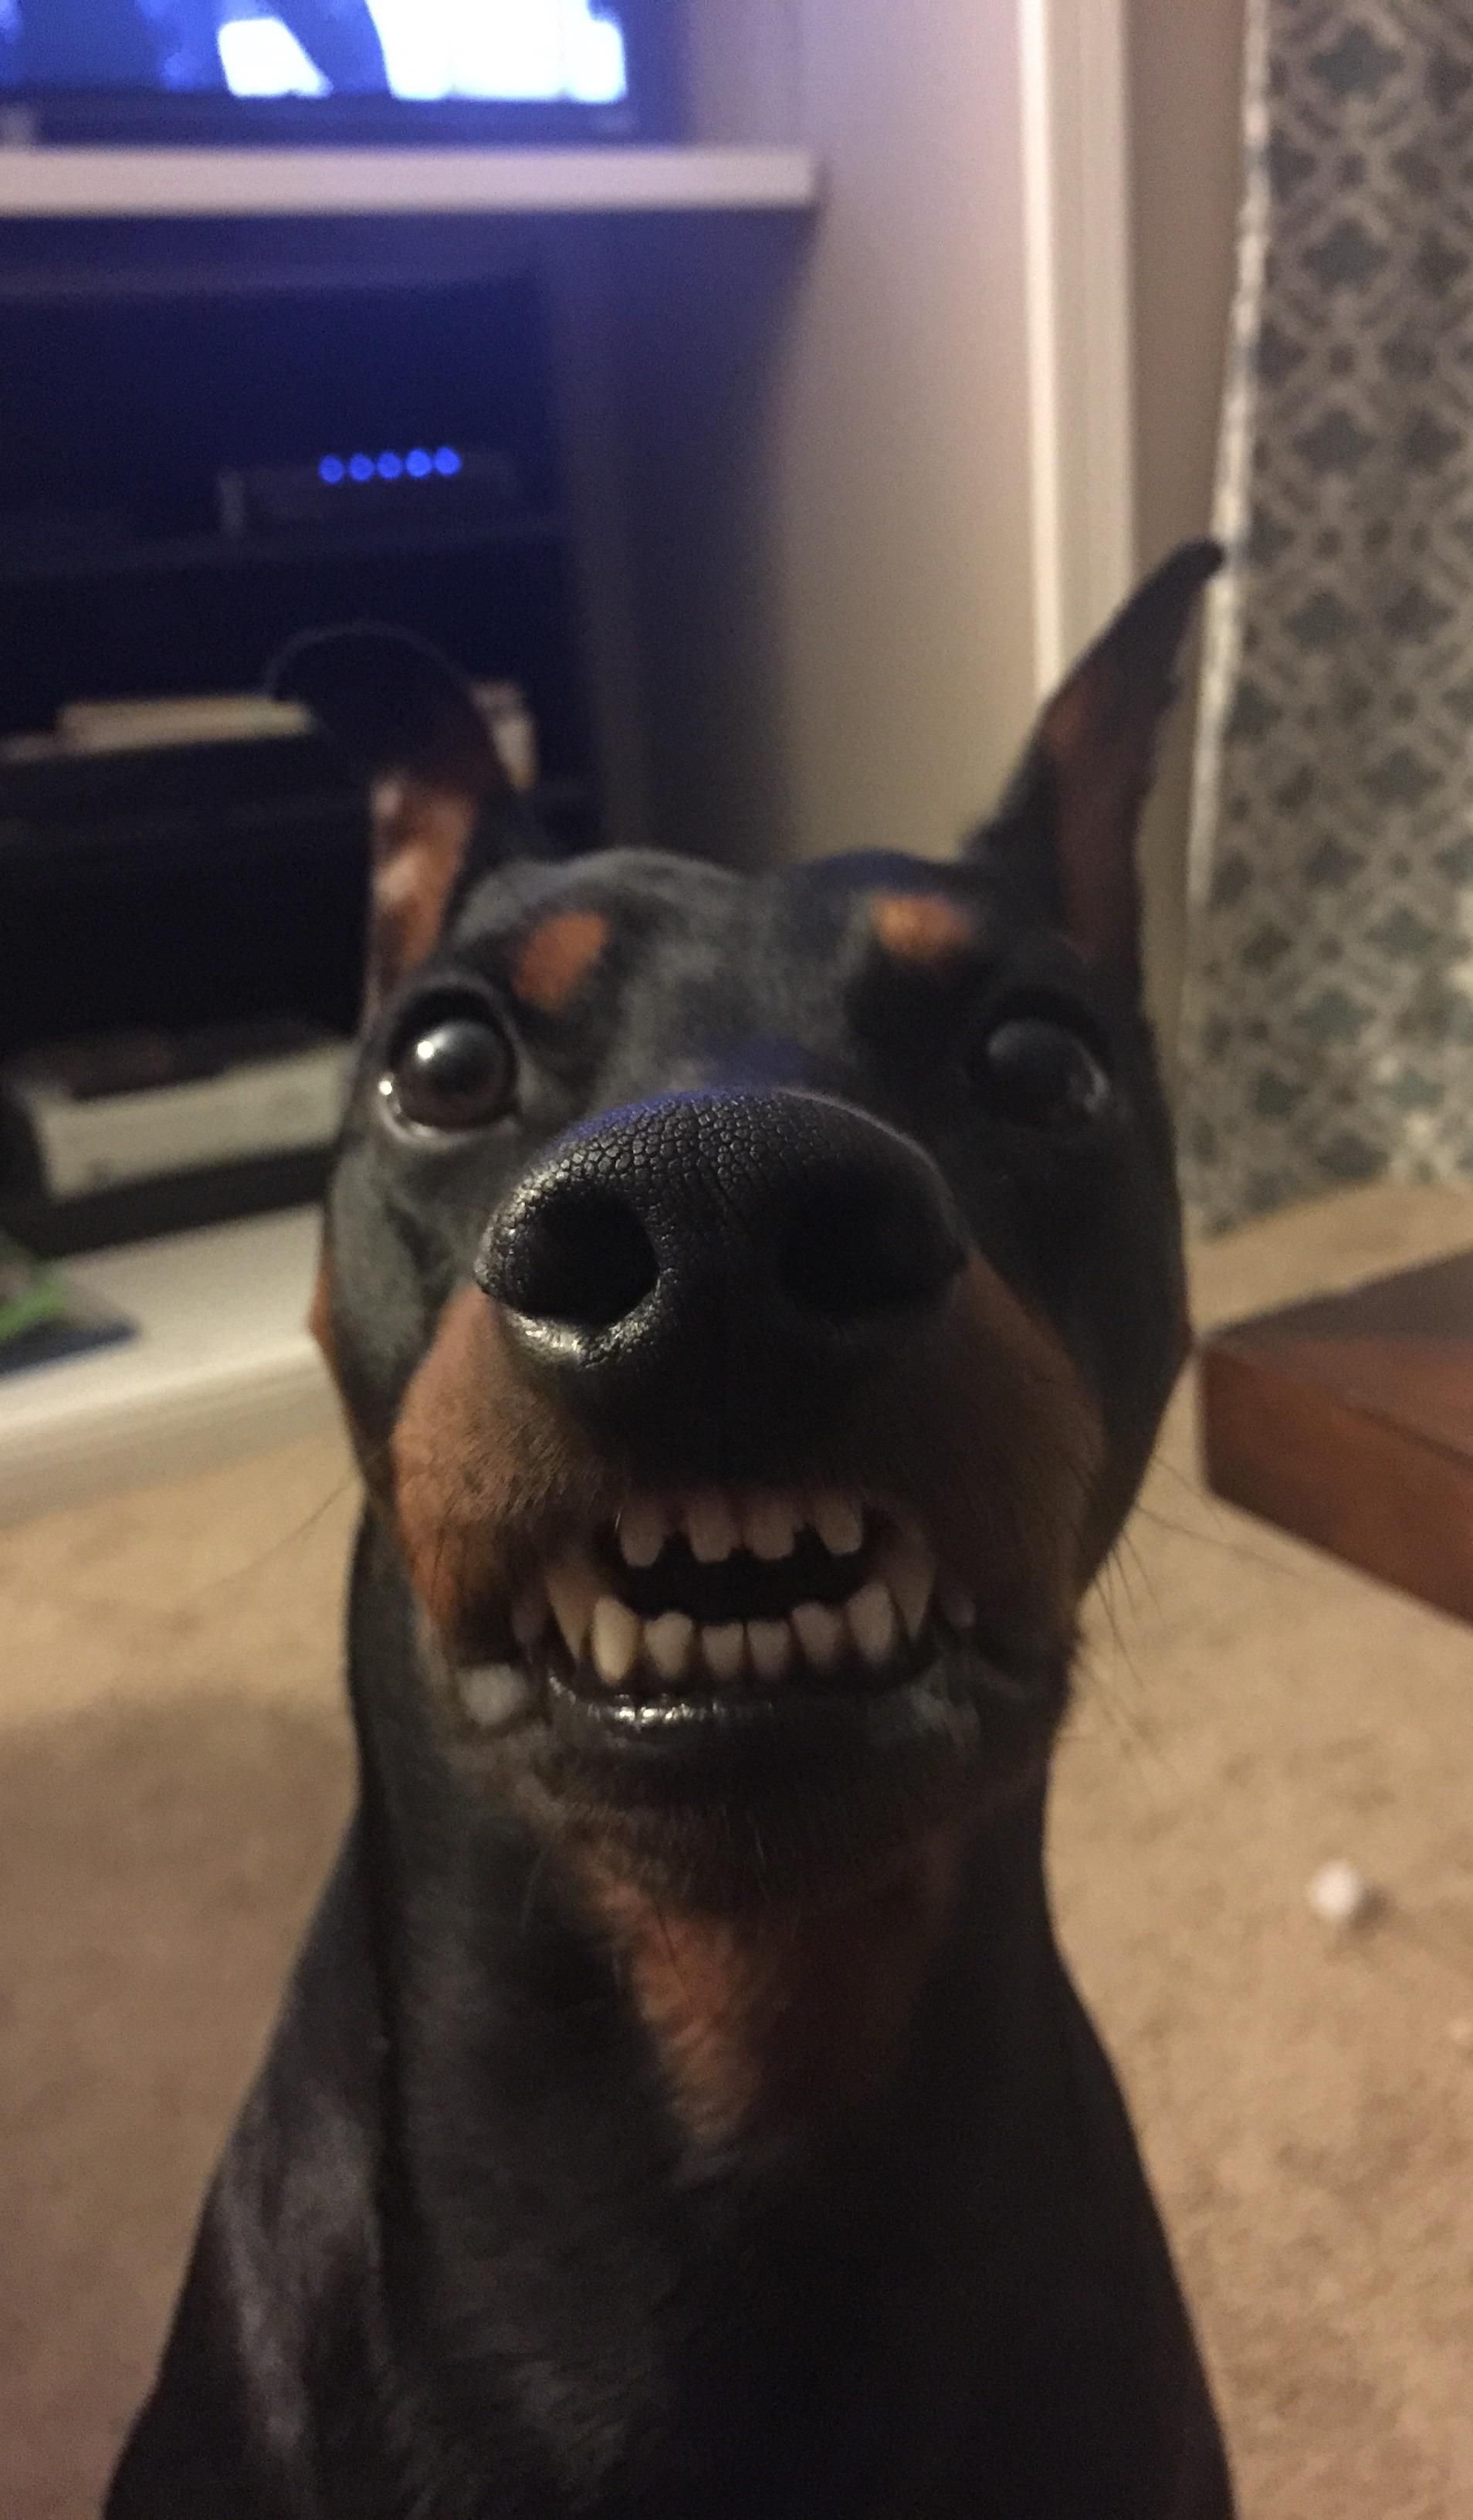 My sister sent me this picture of her dog with zero context.